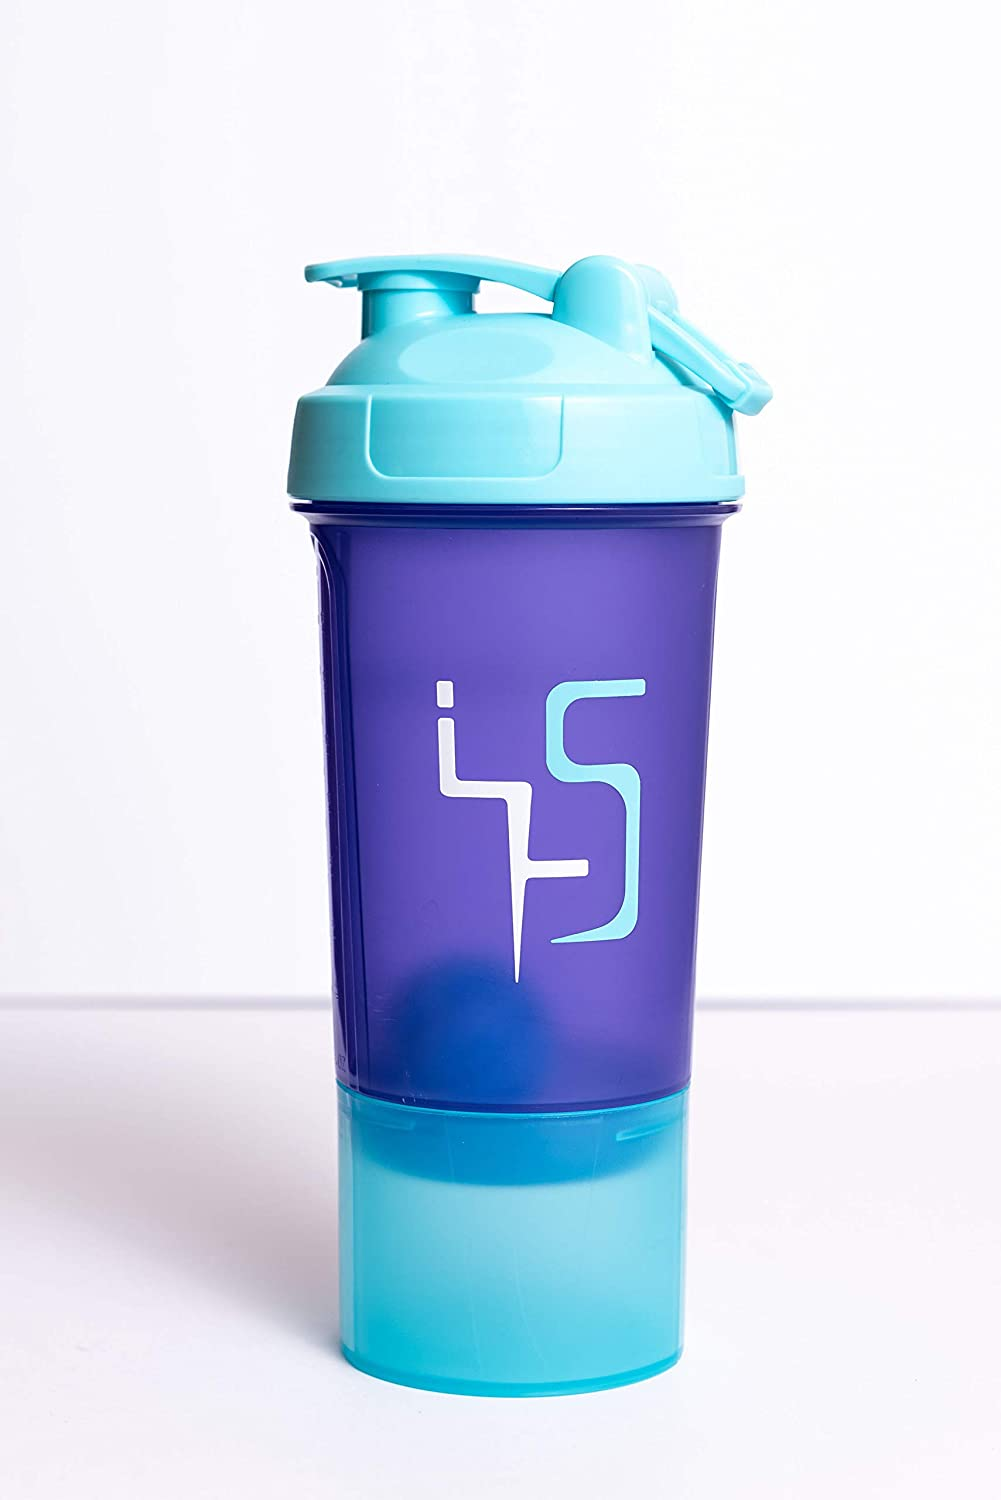 X-MIX Shaker Bottle, Protein Blender for Athletes, Leak Proof Lid Mixer Cup, Purple/Blue Protein Shake, Water Bottle, 500 ml / 20 oz with 150 ml / 6 oz Storage for Protein Powder & Gym Supplements